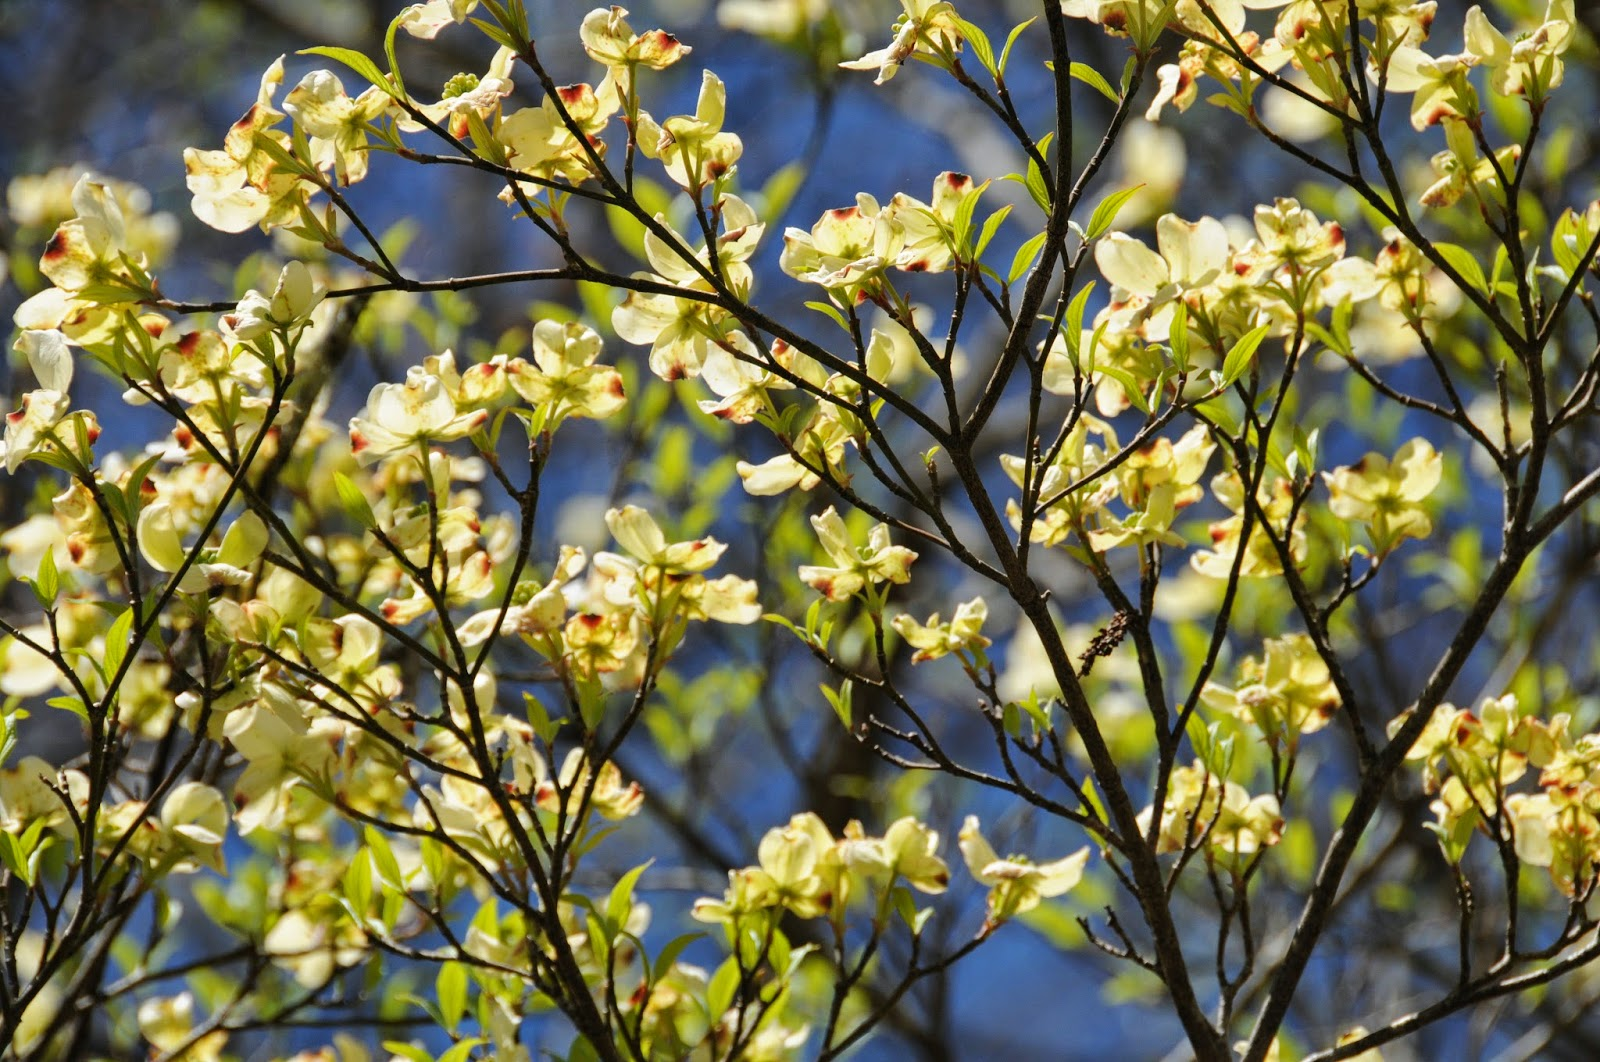 The flowering dogwood is alive with flowers and leaves opening flowering dogwood cornus florida brasstown north carolina dhlflorist Image collections